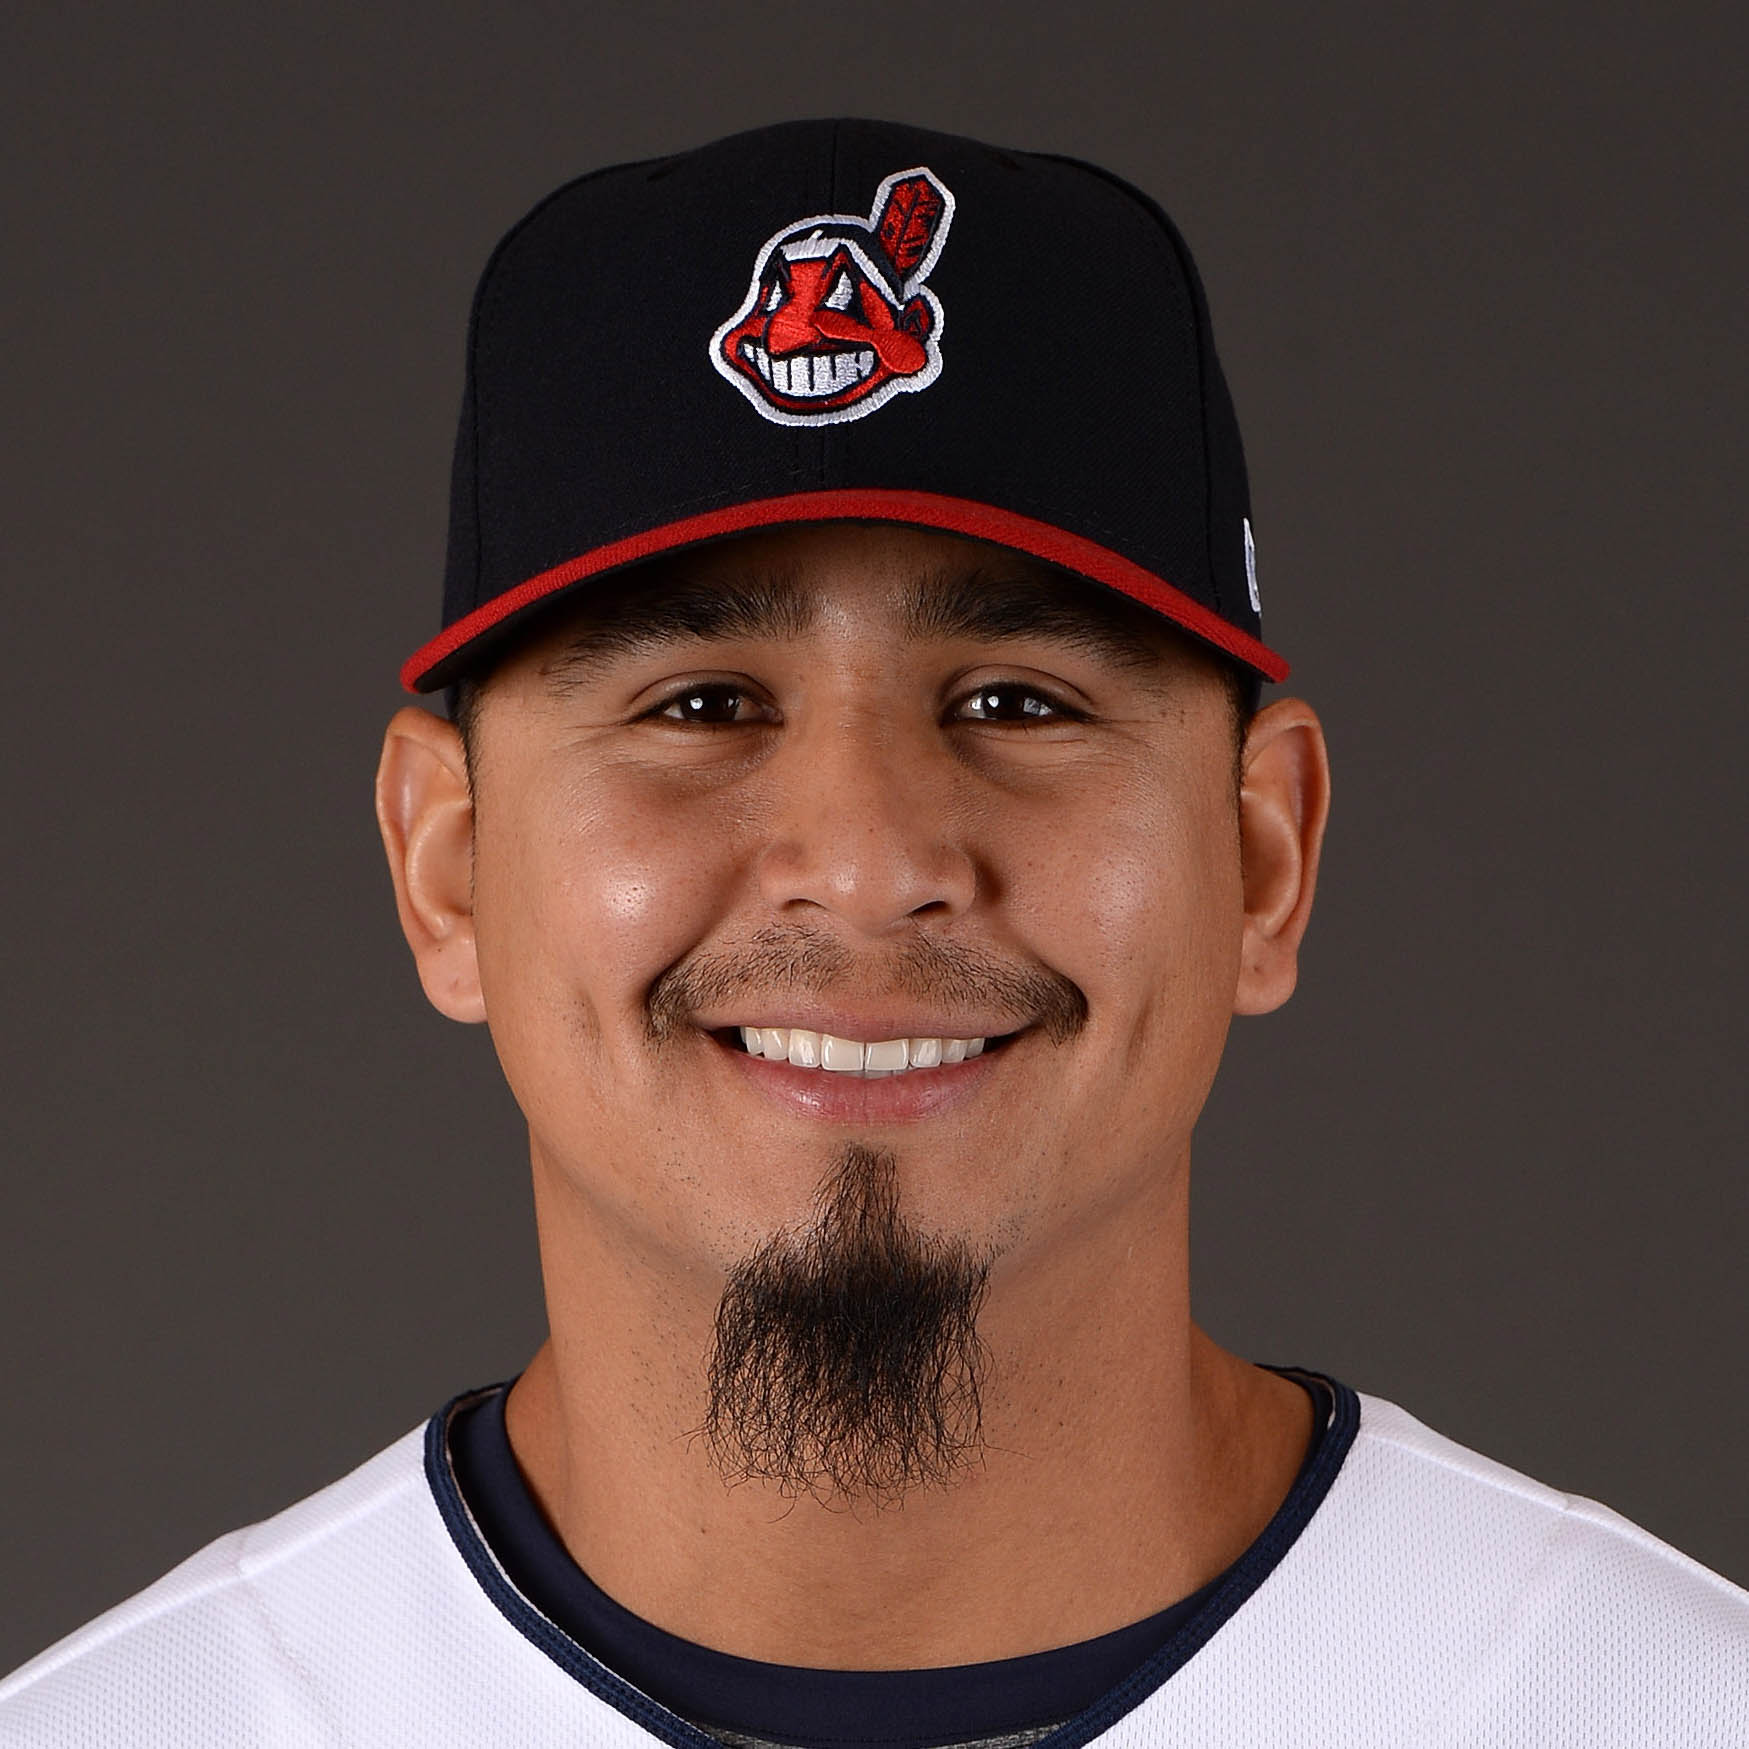 Carlos Carrasco (R) Headshot